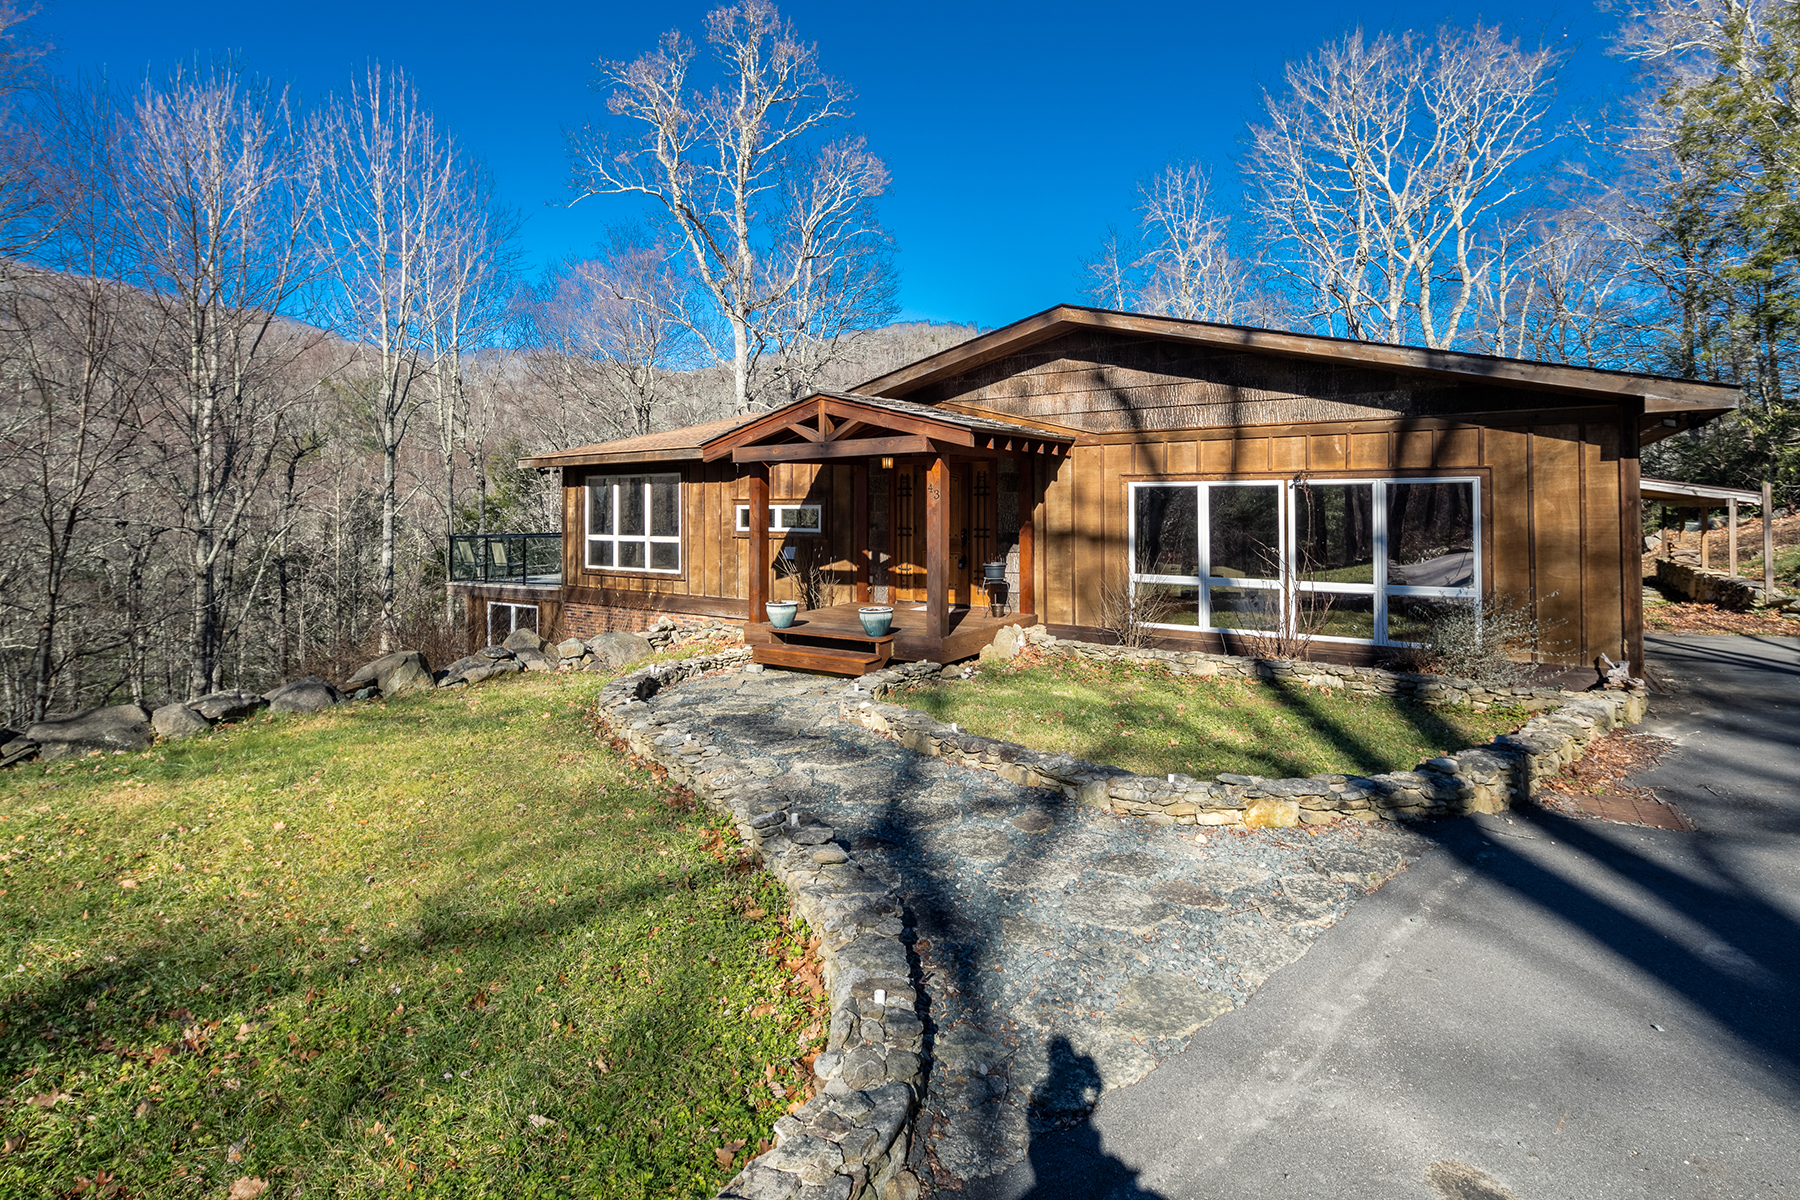 Single Family Home for Sale at LINVILLE - TANGLEWOOD 43 Peak View Lane Linville, North Carolina 28646 United States